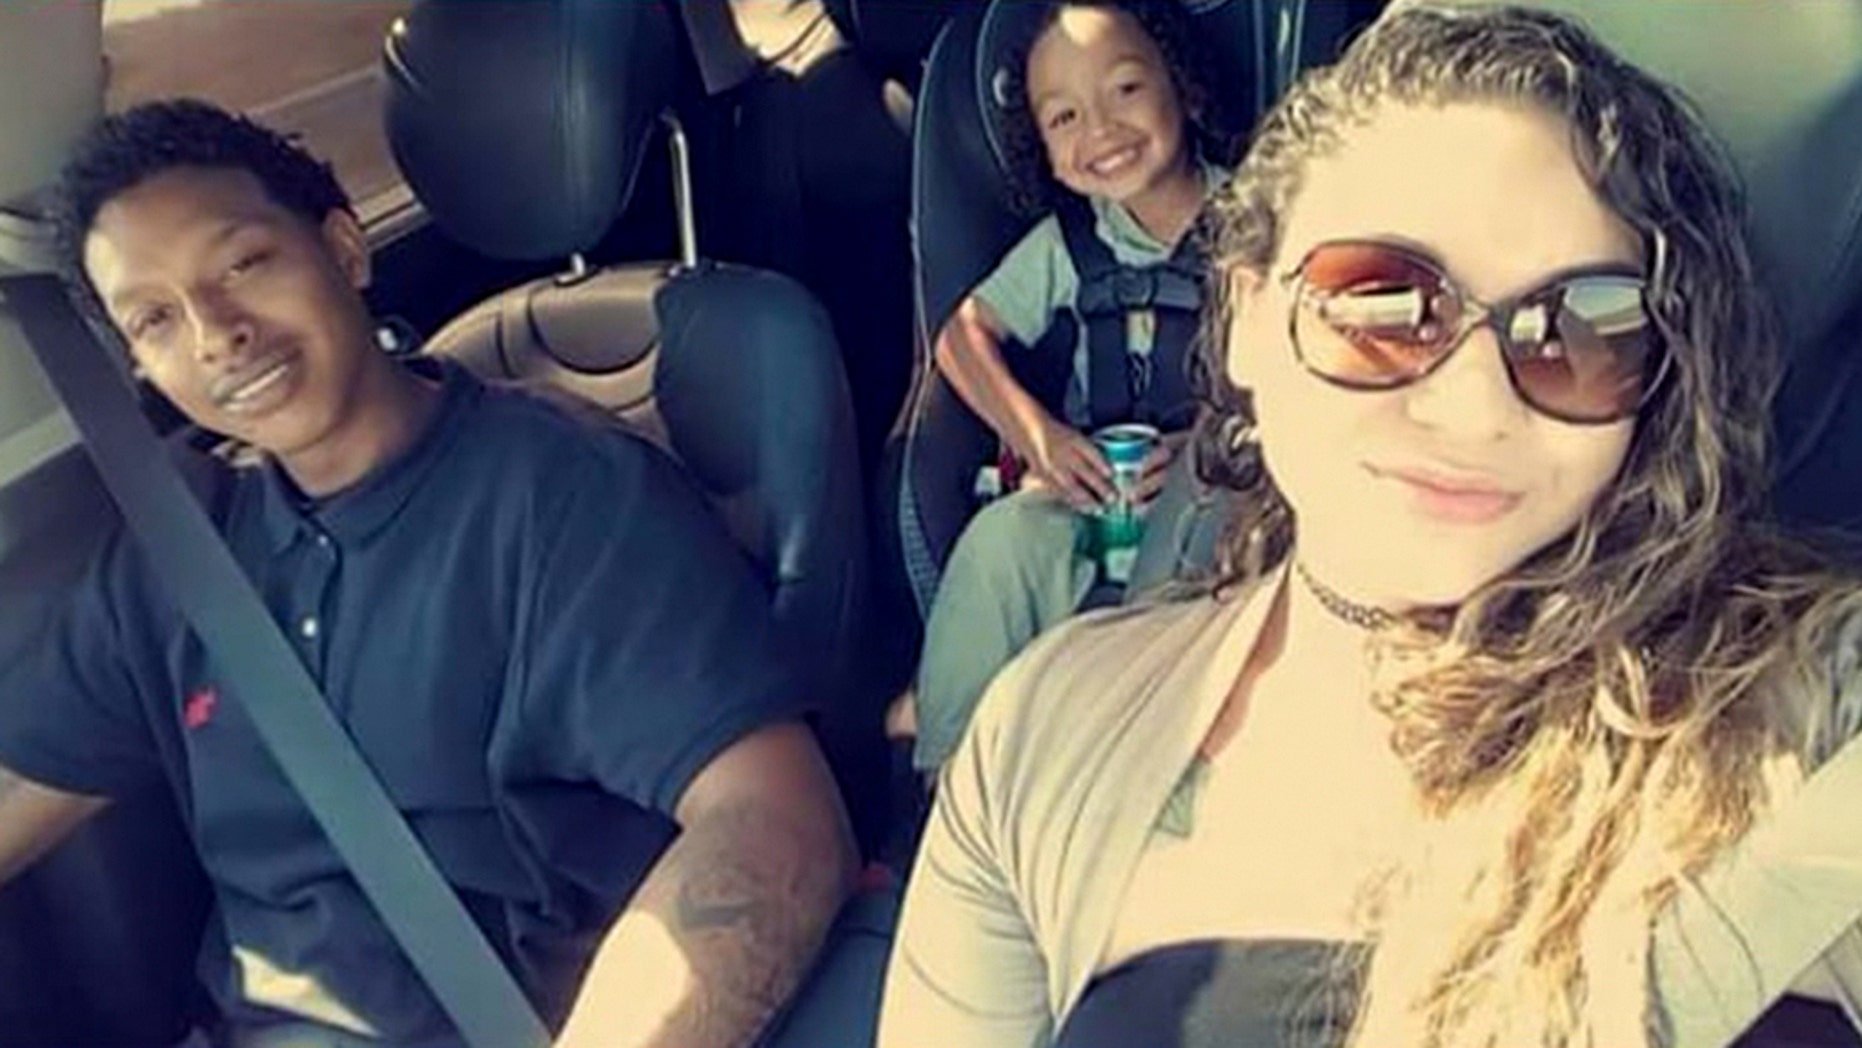 Police believe the remains of Rayshawn Hudson, Maya Rivera and their son Rayshawn Jr. were found.